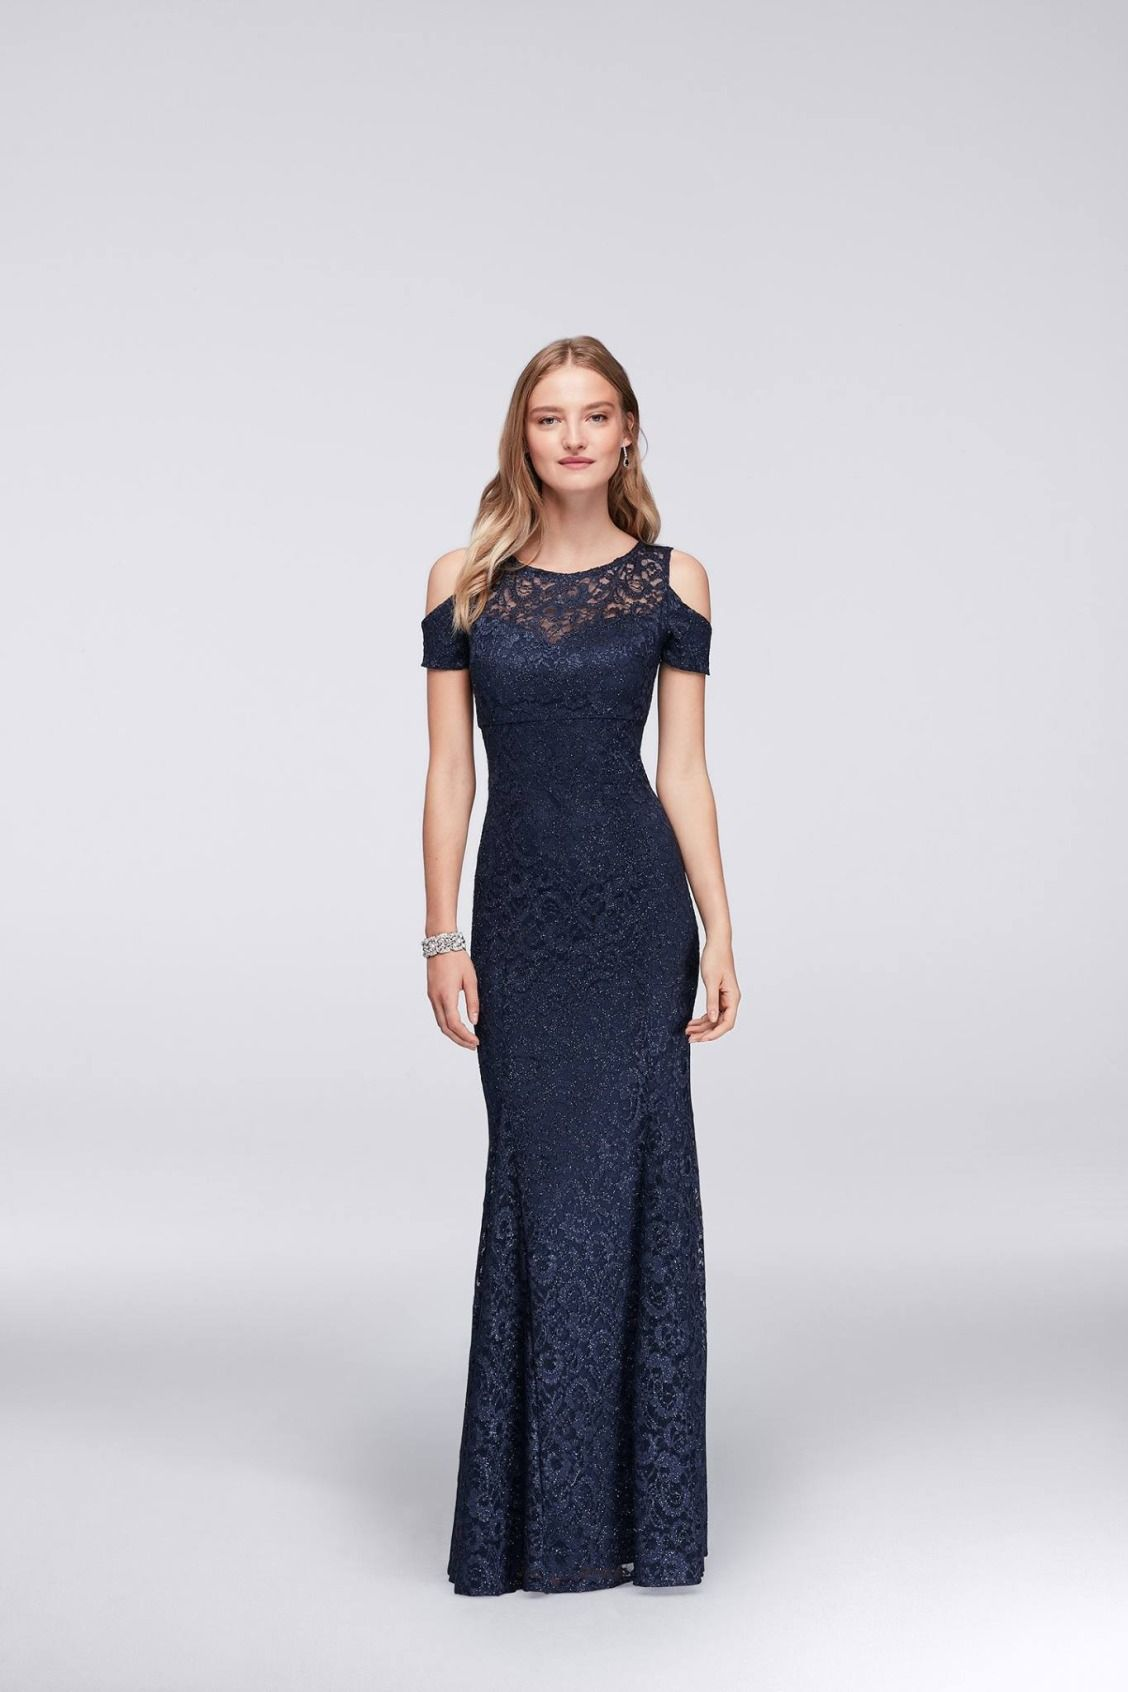 29b64f35b6e Navy Cold Shoulder Lace Mermaid Mother of the Bride Gown from David s Bridal